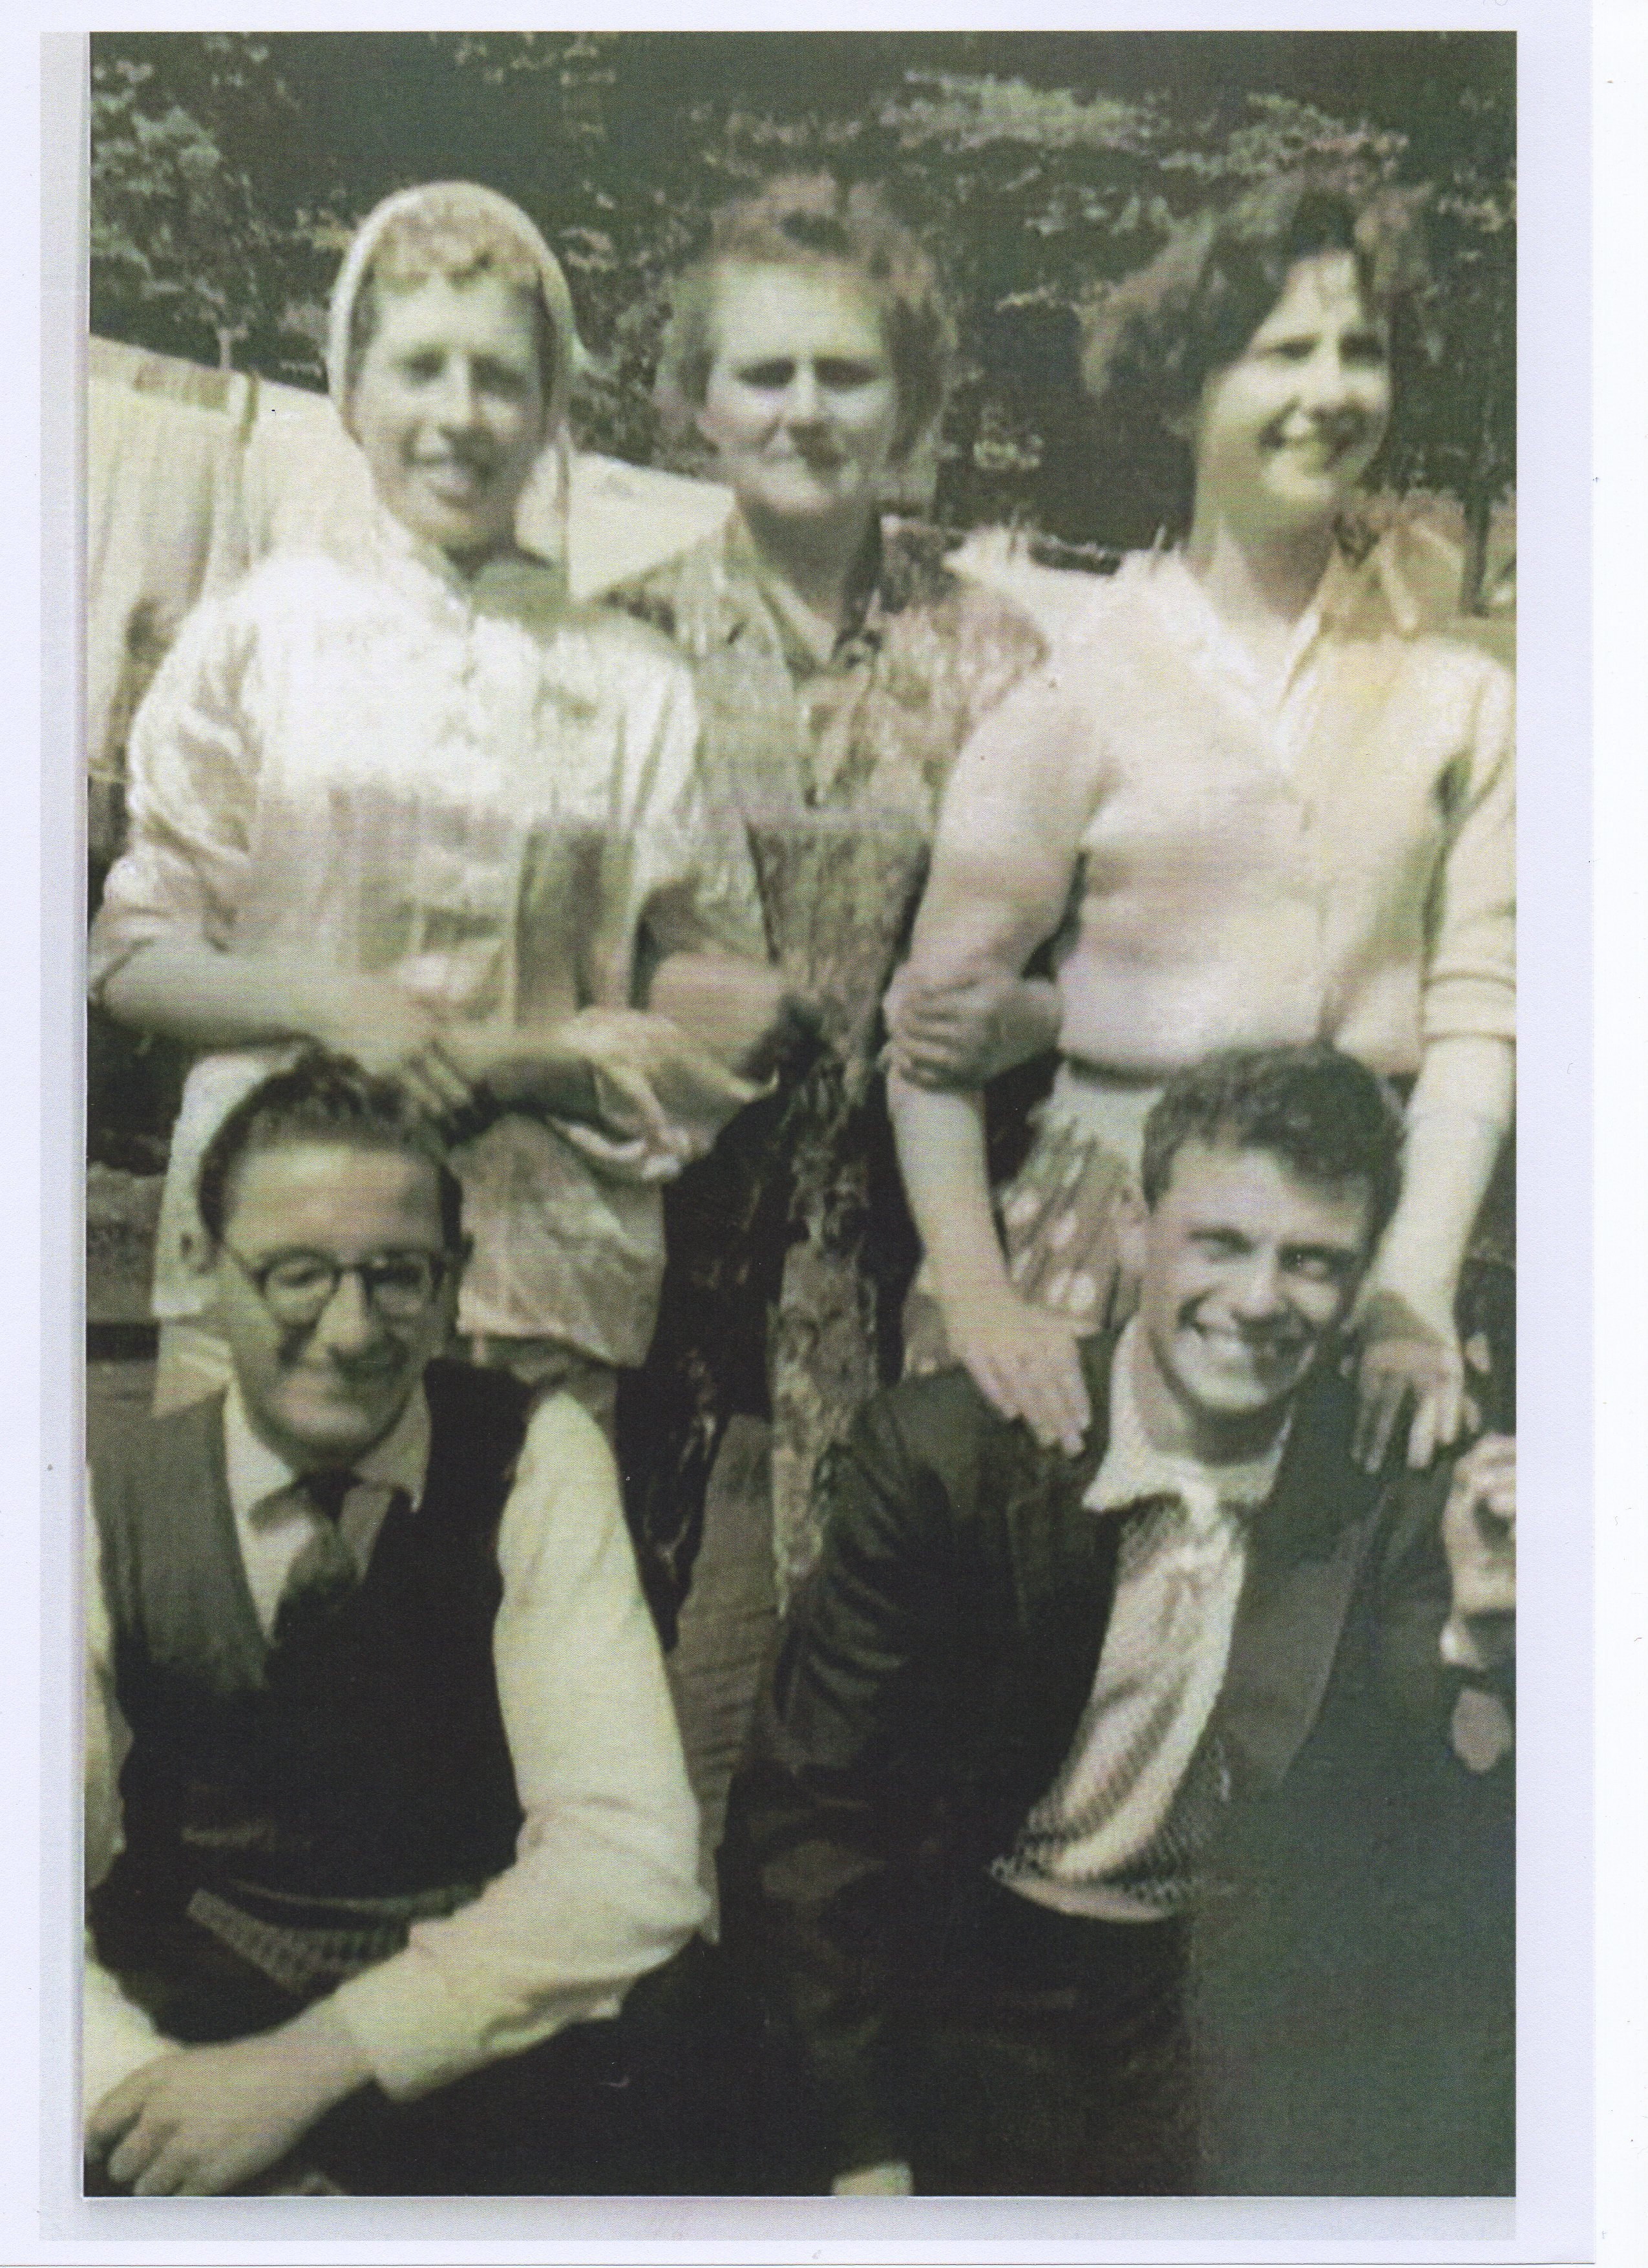 A Family photo, from left to right - Norma, Mum